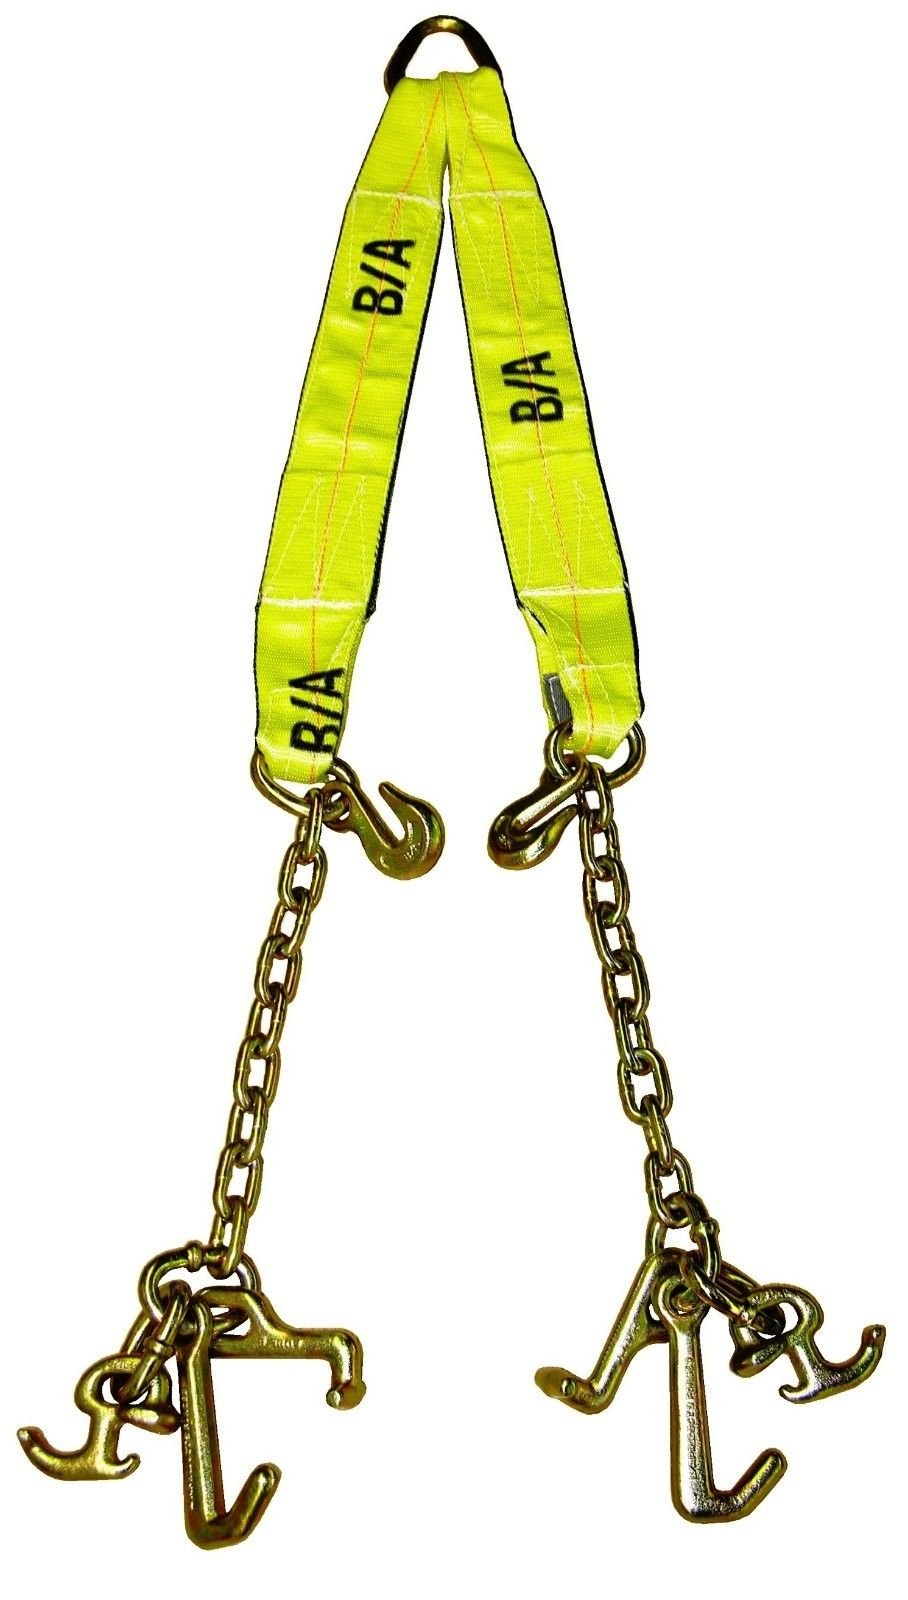 Ships in 1 -2 Business Days! B/A Products - N711-AV-WP - Adjustable Polyester V Strap / V Bridle, Yellow for Rollback by BA Products